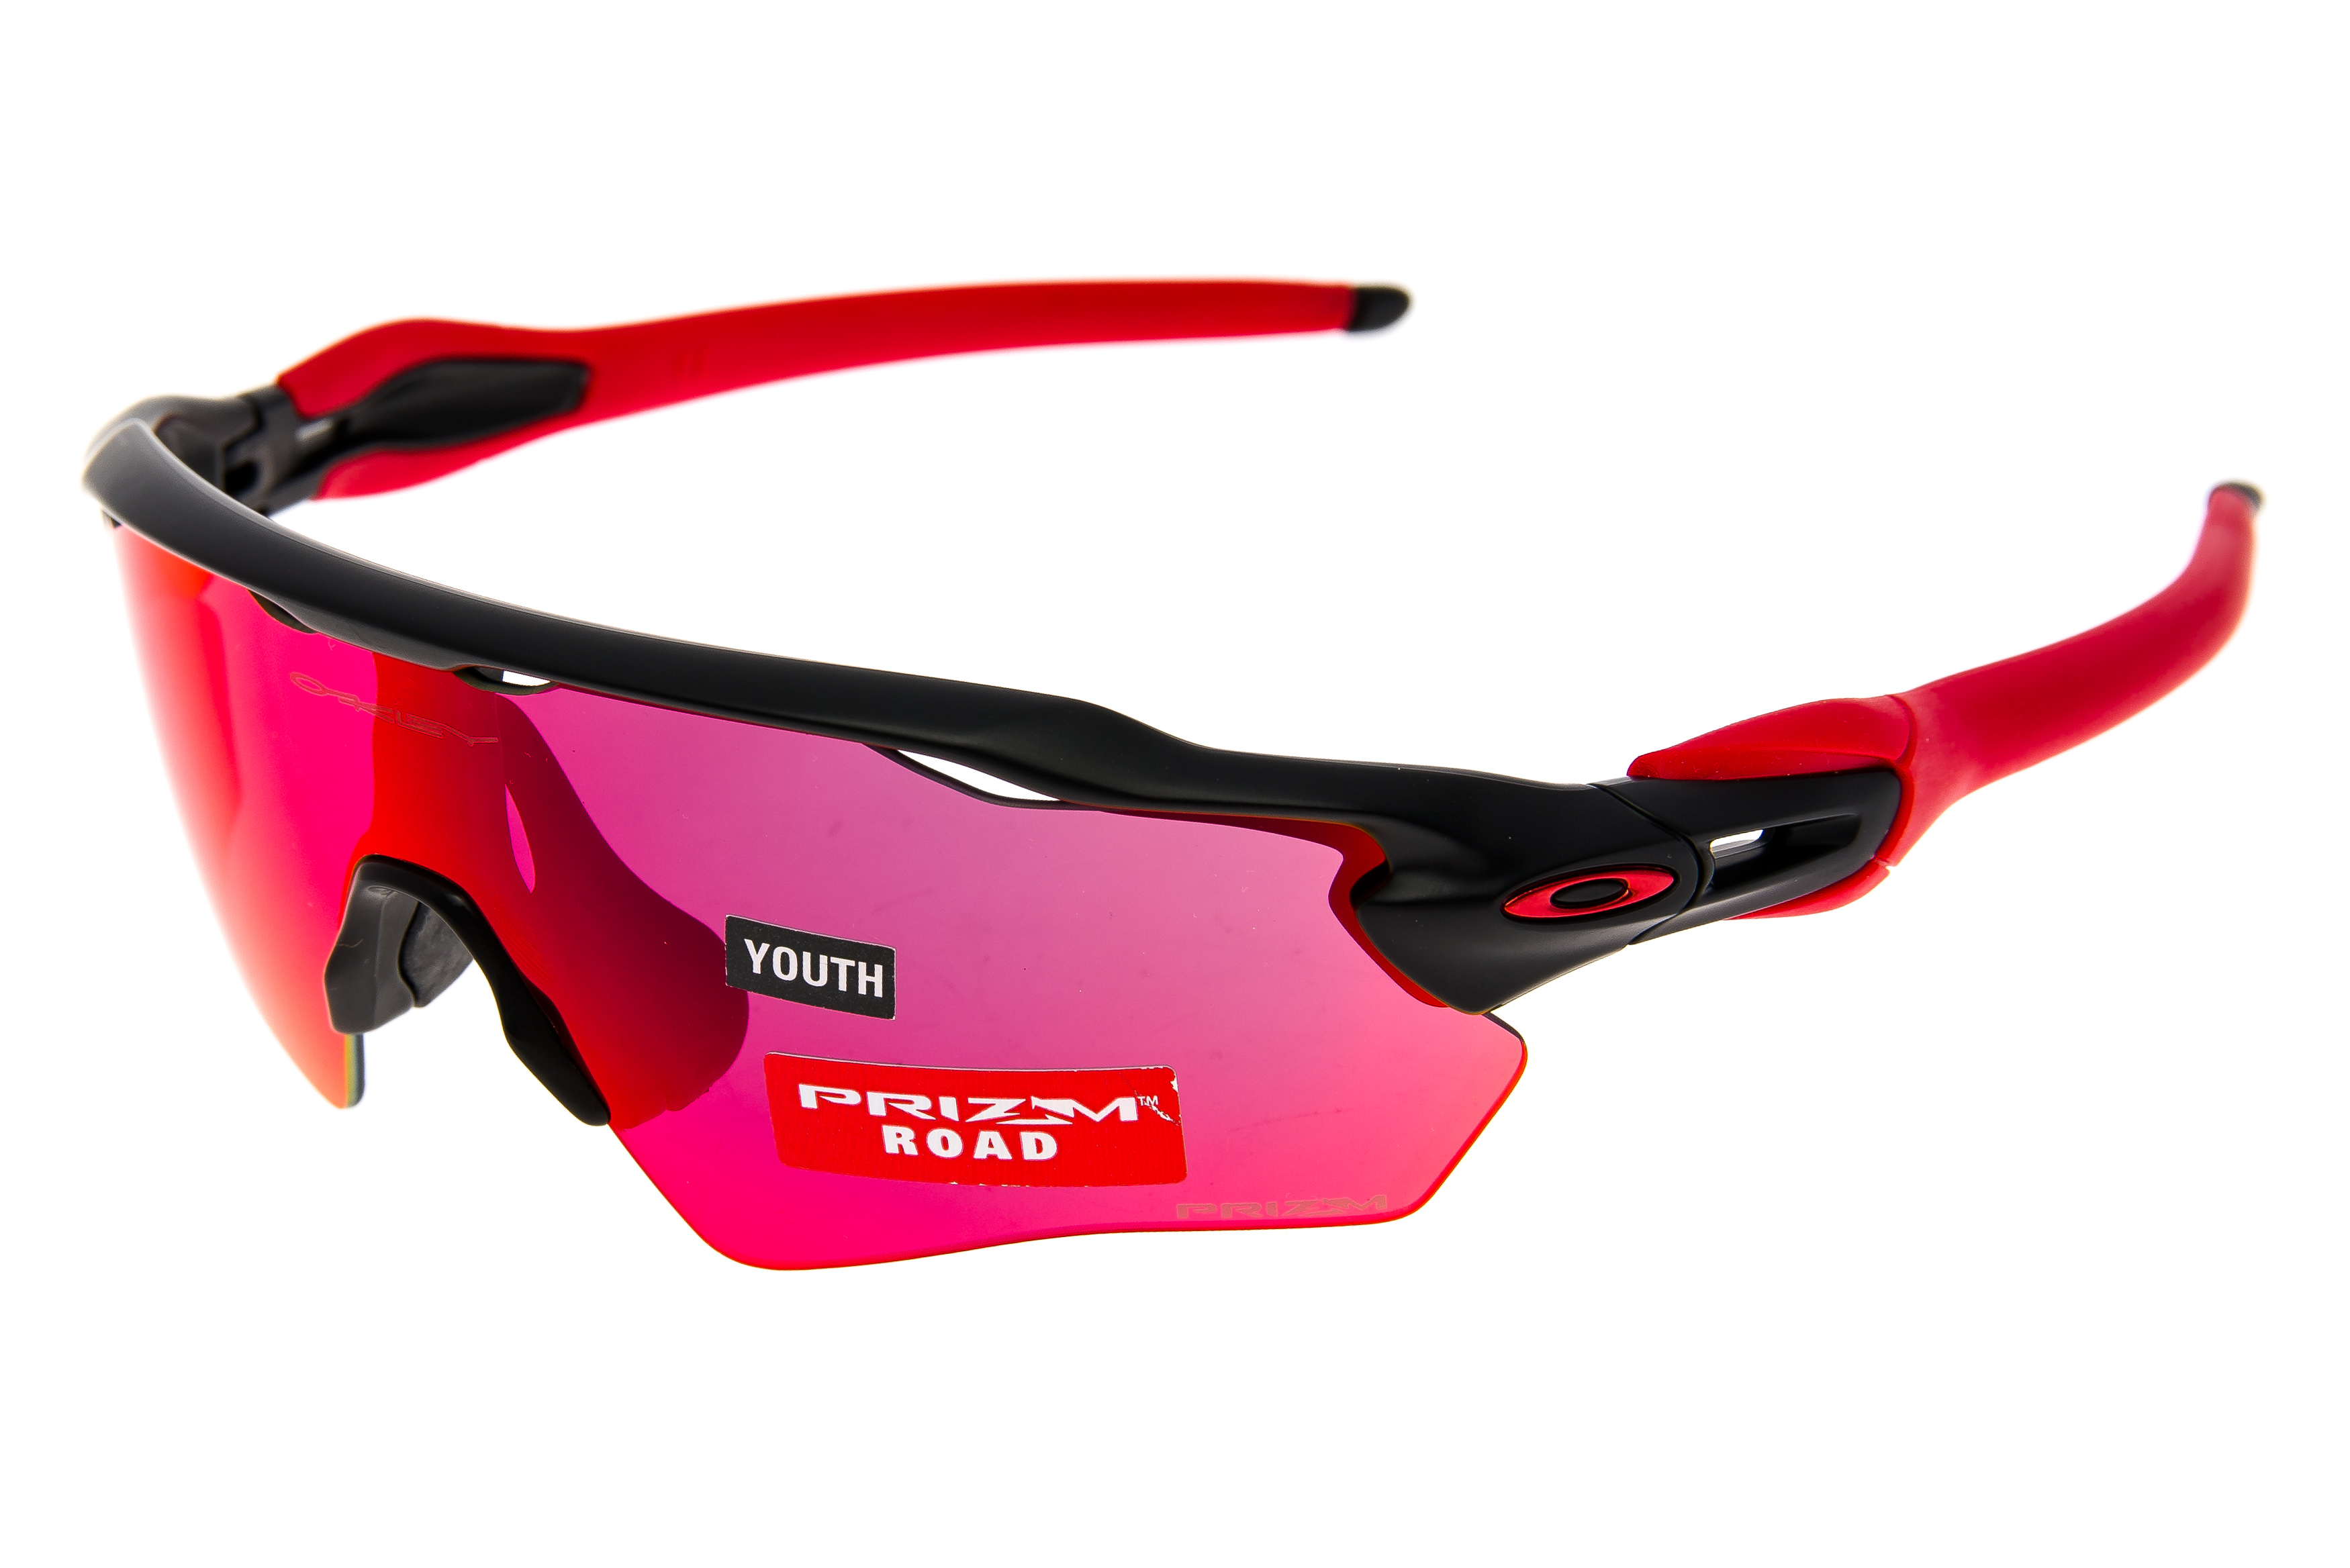 f22e1ff18c9 Oakley Radar XS EV Path Sunglasses Black Red Frame Prizm Road Lens -  Excellent